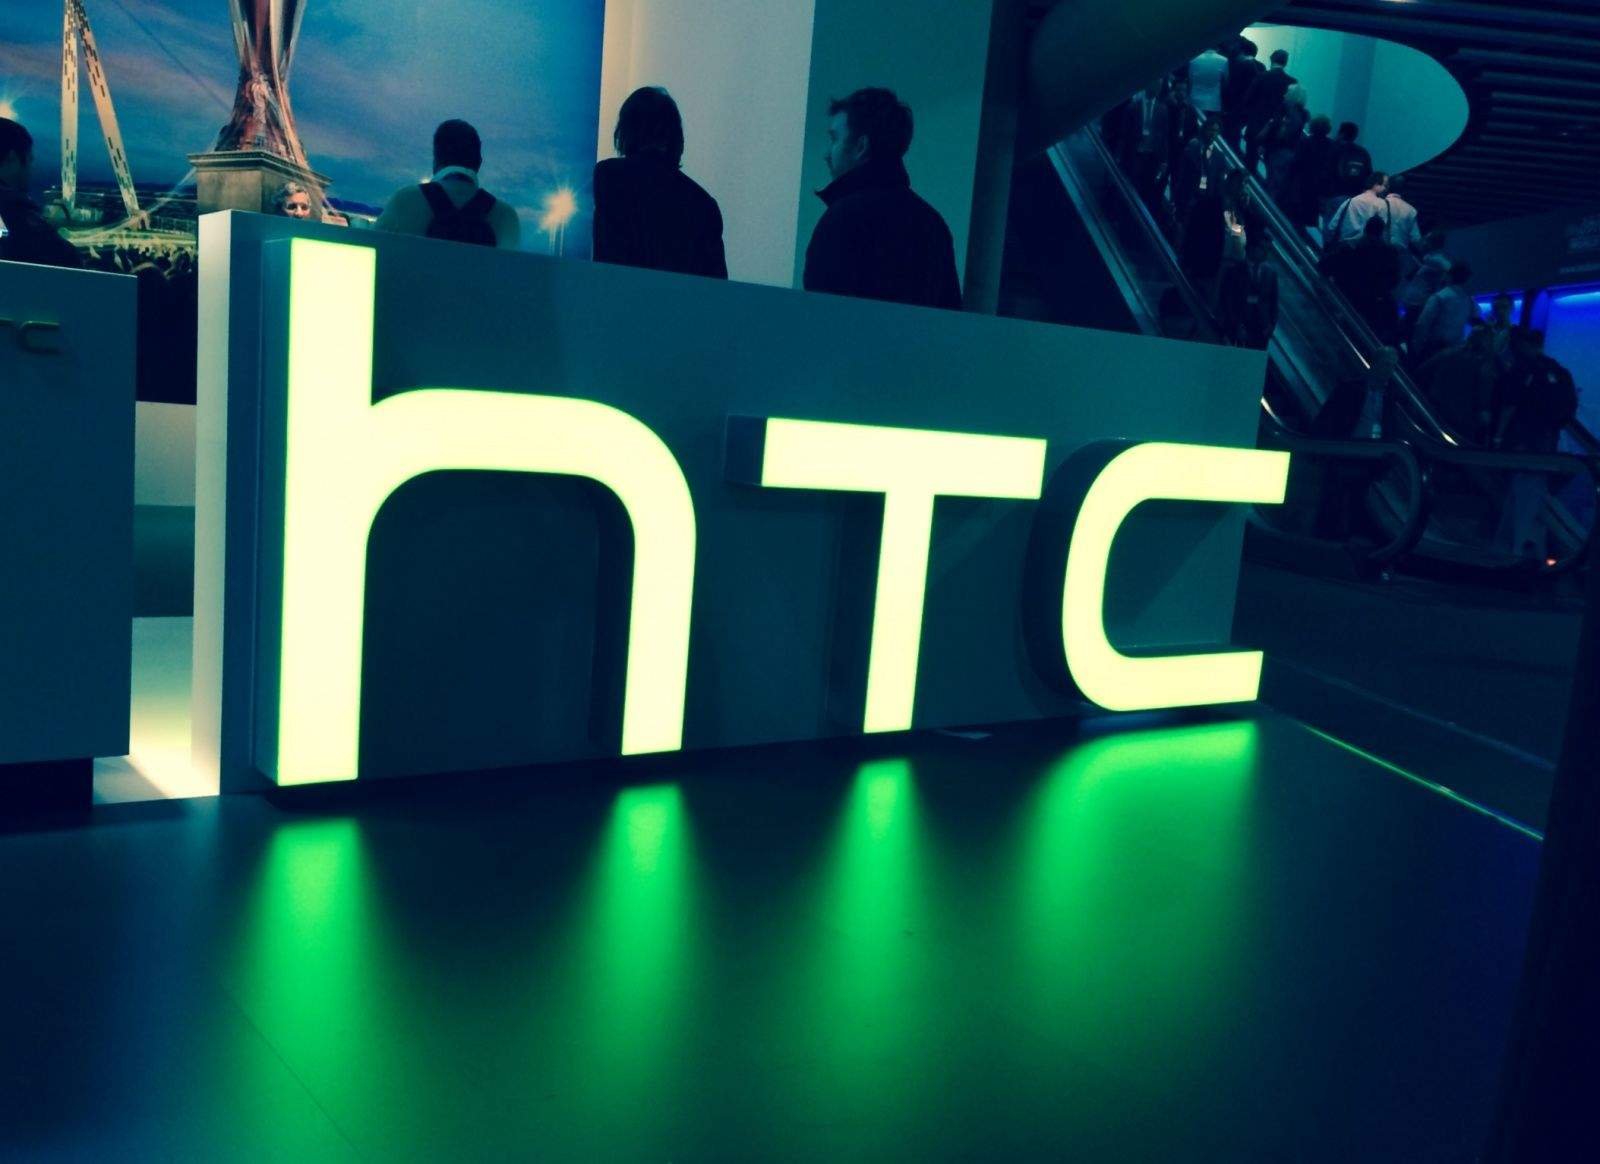 HTC has big plans for 2019